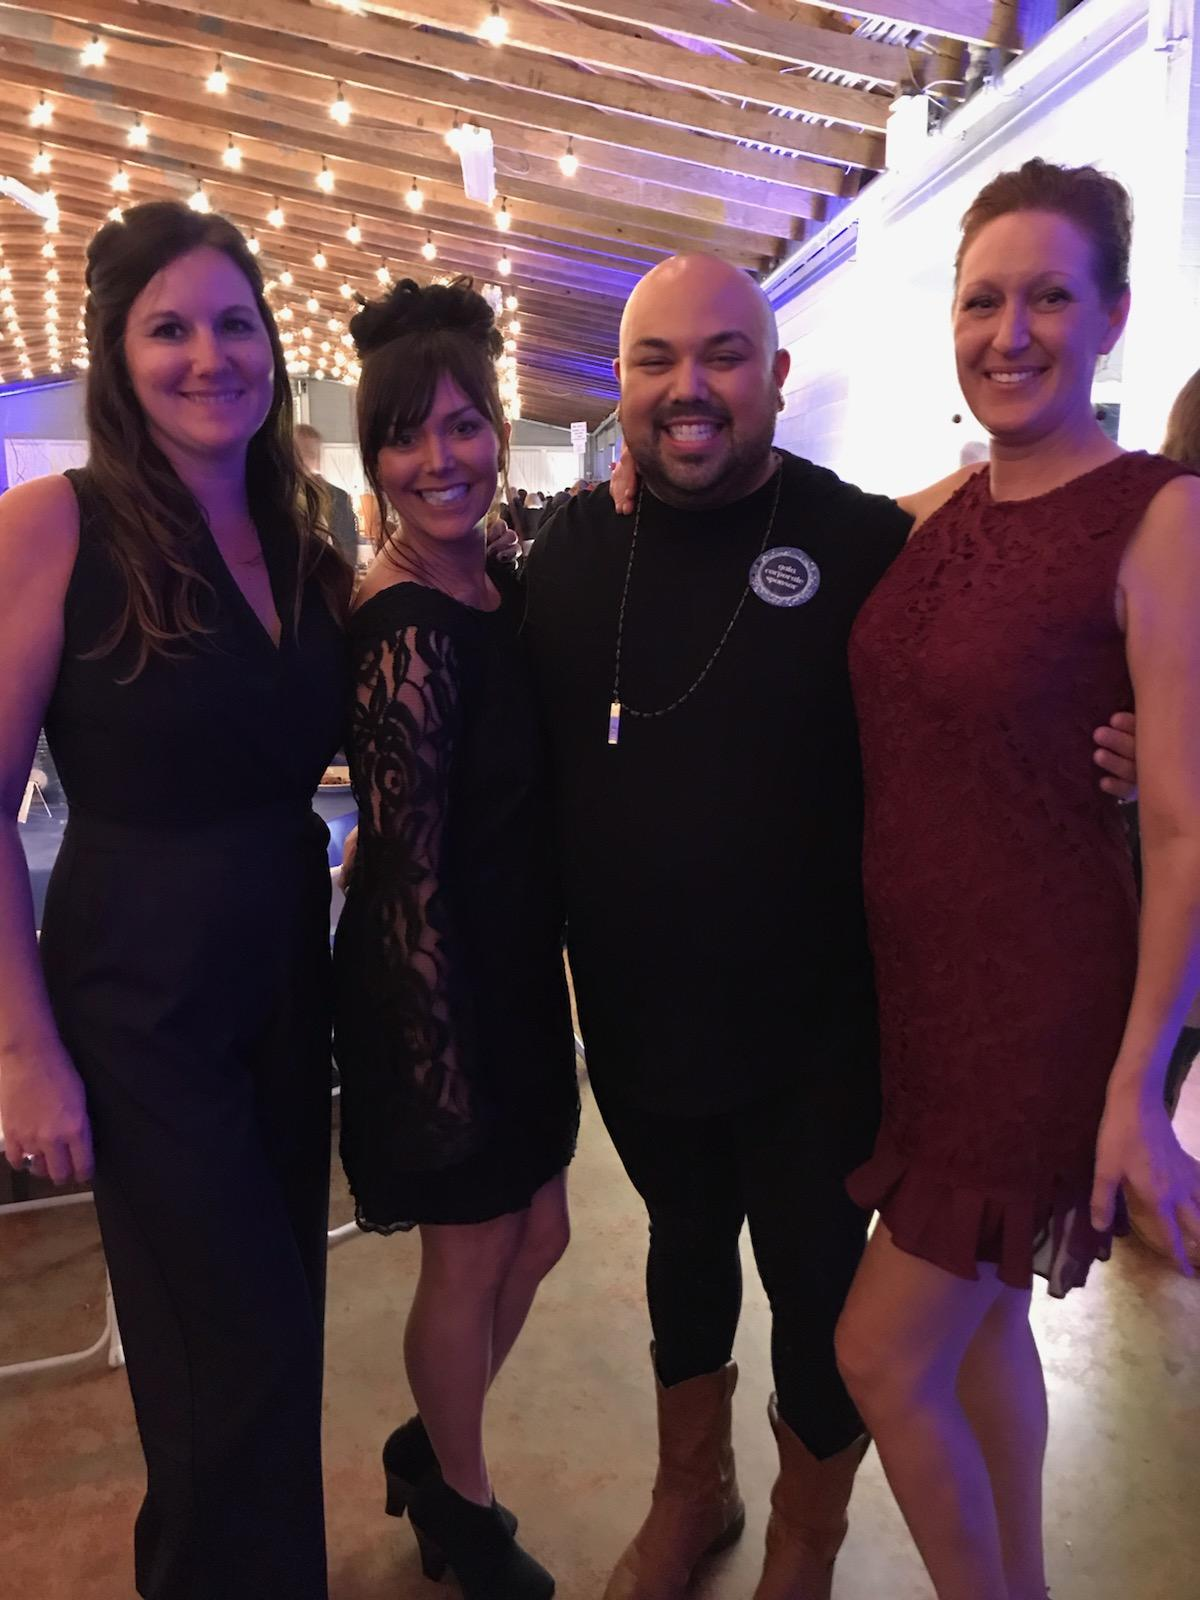 Hairoics staff at Wags and Whiskers Fundraiser